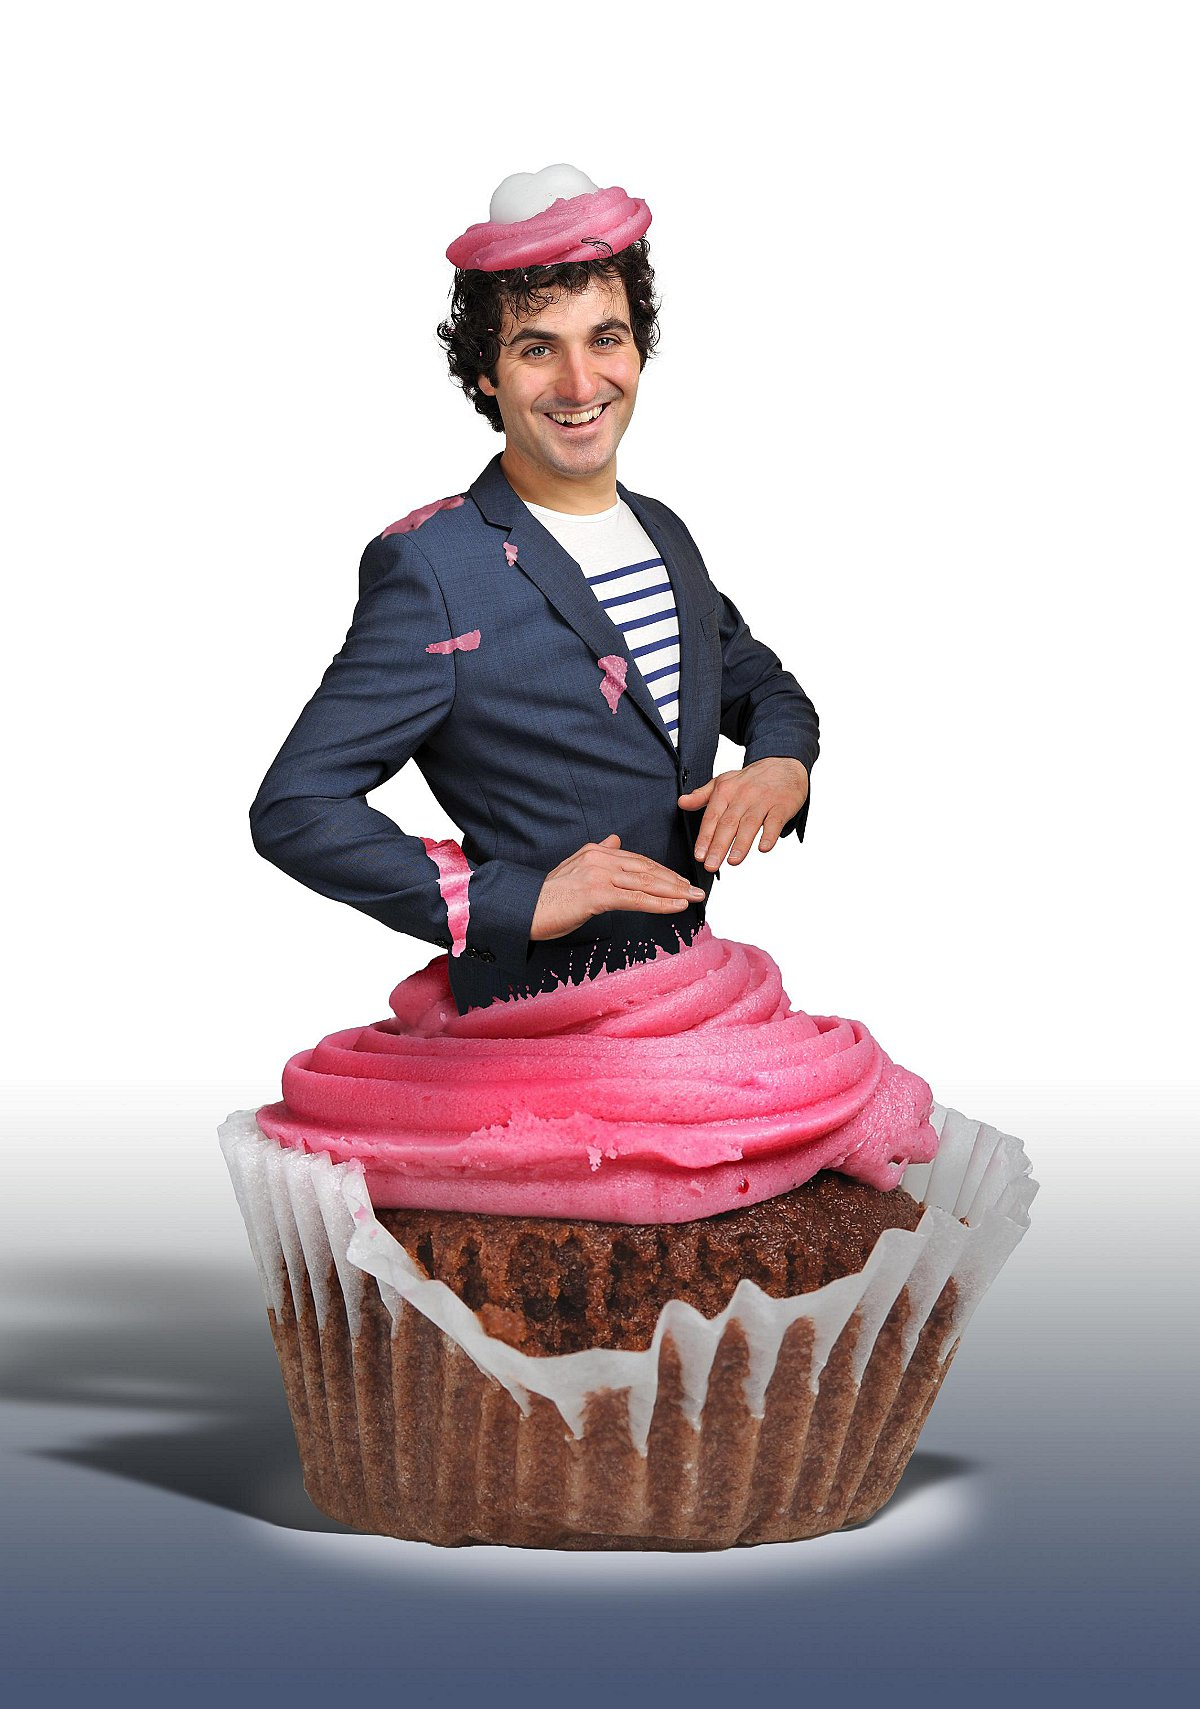 Patrick Monahan. Photo by Steve Ullathorne